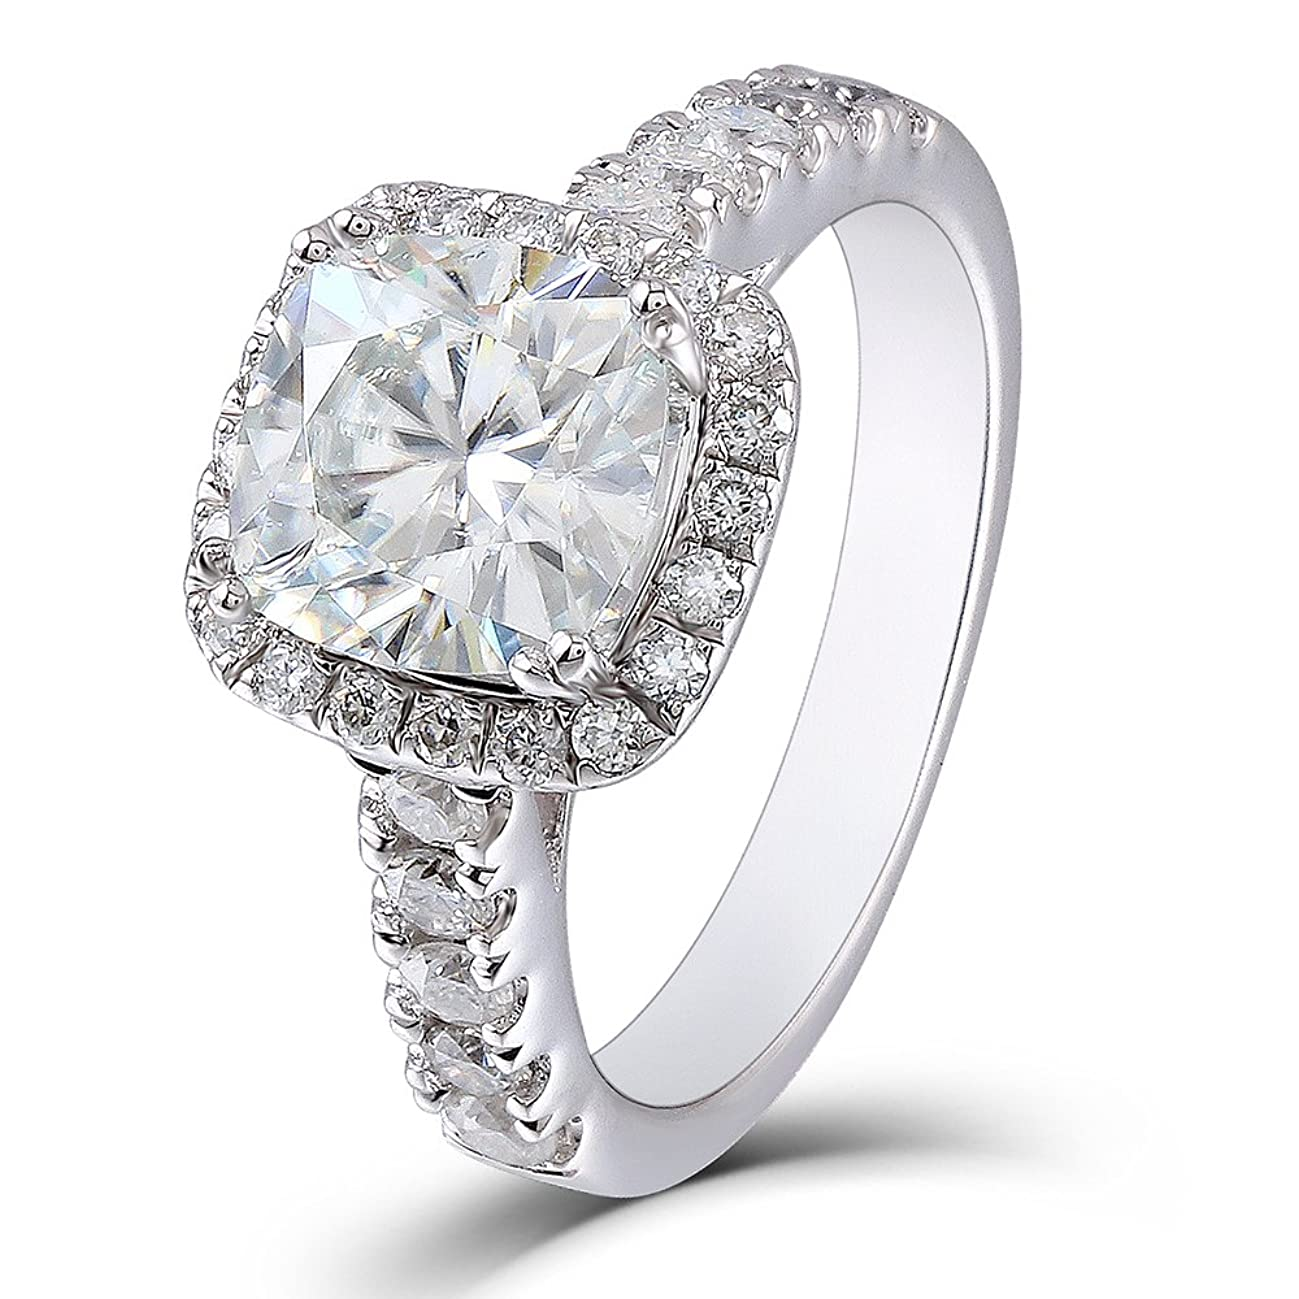 DovEggs 2ct Center 7.5mm Cushion Cut 2.3mm Width H-I Color Created Moissanite Engagement Ring Solitare with Accents Platinum Plated Silver